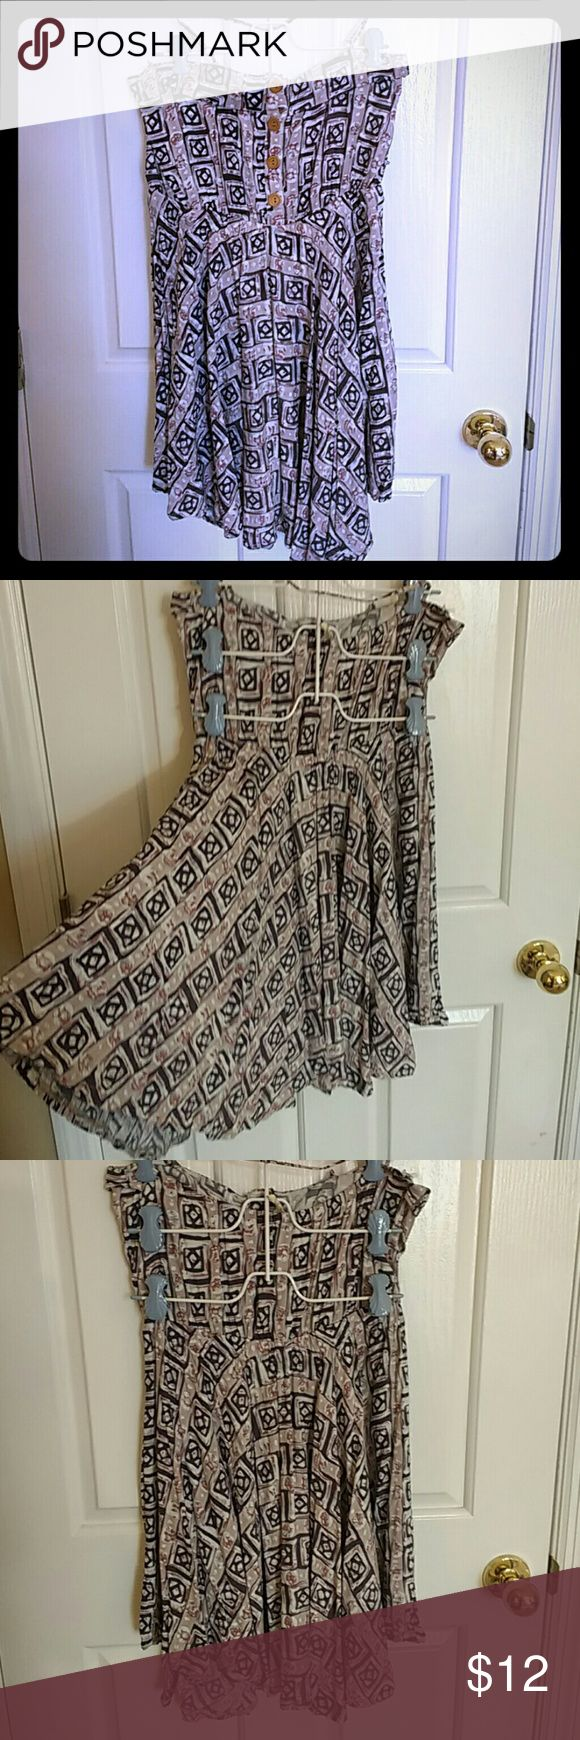 "EUC Francesca's Tribal Pattern Festival Dress This is a really pretty dress I bought from Francesca's a few years ago and only wore once. There's no size listed on any of the tags, but it was labeled a large in the store. It features wooden buttons on the front, an over the neck spaghetti strap, and a beautiful flowy a-line skirt. I measured the bust at ~36"" around and the skirt is a little asymmetrical measuring between 26-28"" from top of bust to hem. Comment with questions. Francesca's…"